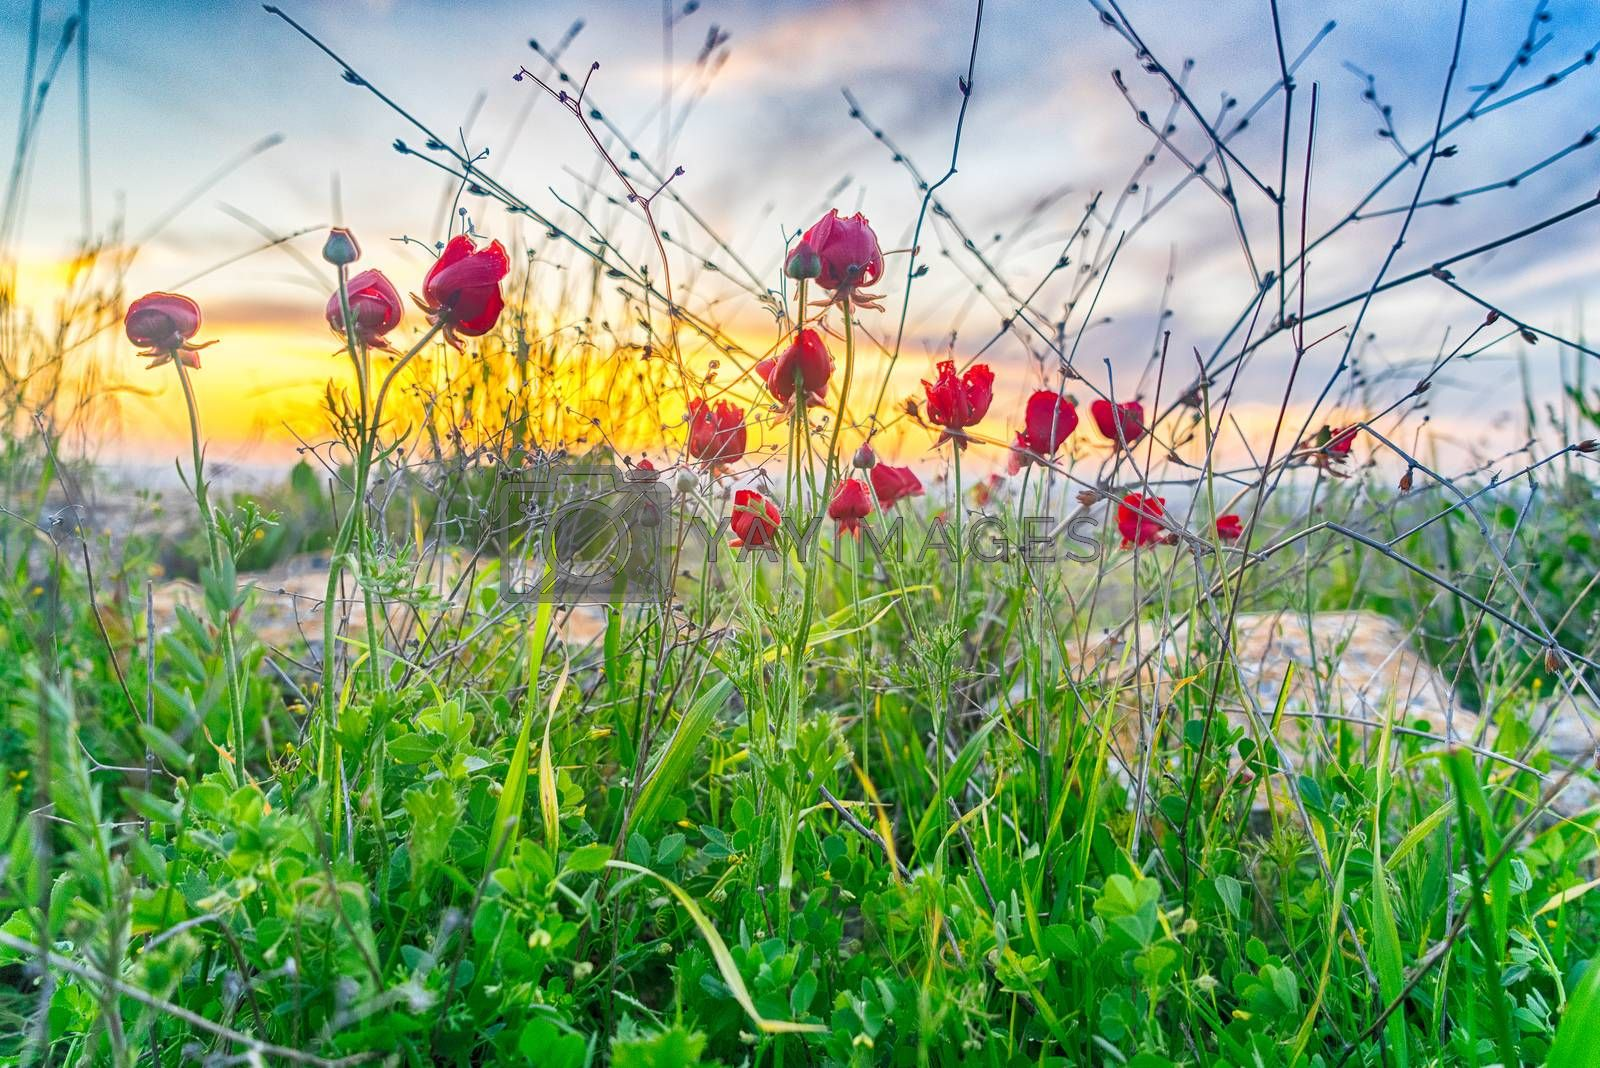 Red Flowers and green grass in ecology walk for nature